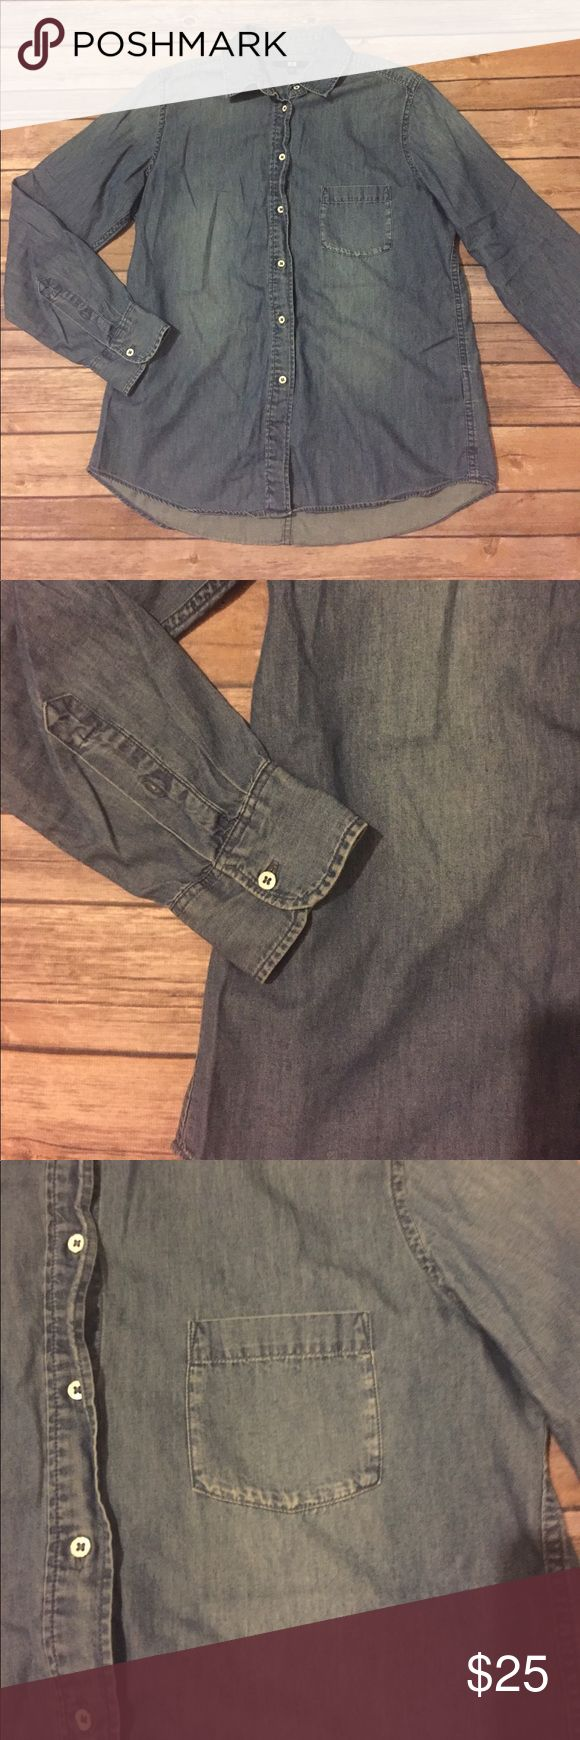 Uniqlo Denim Button Down This uniqlo Denim Button Down is size medium, in excellent used condition, and made of 100% cotton Uniqlo Tops Button Down Shirts